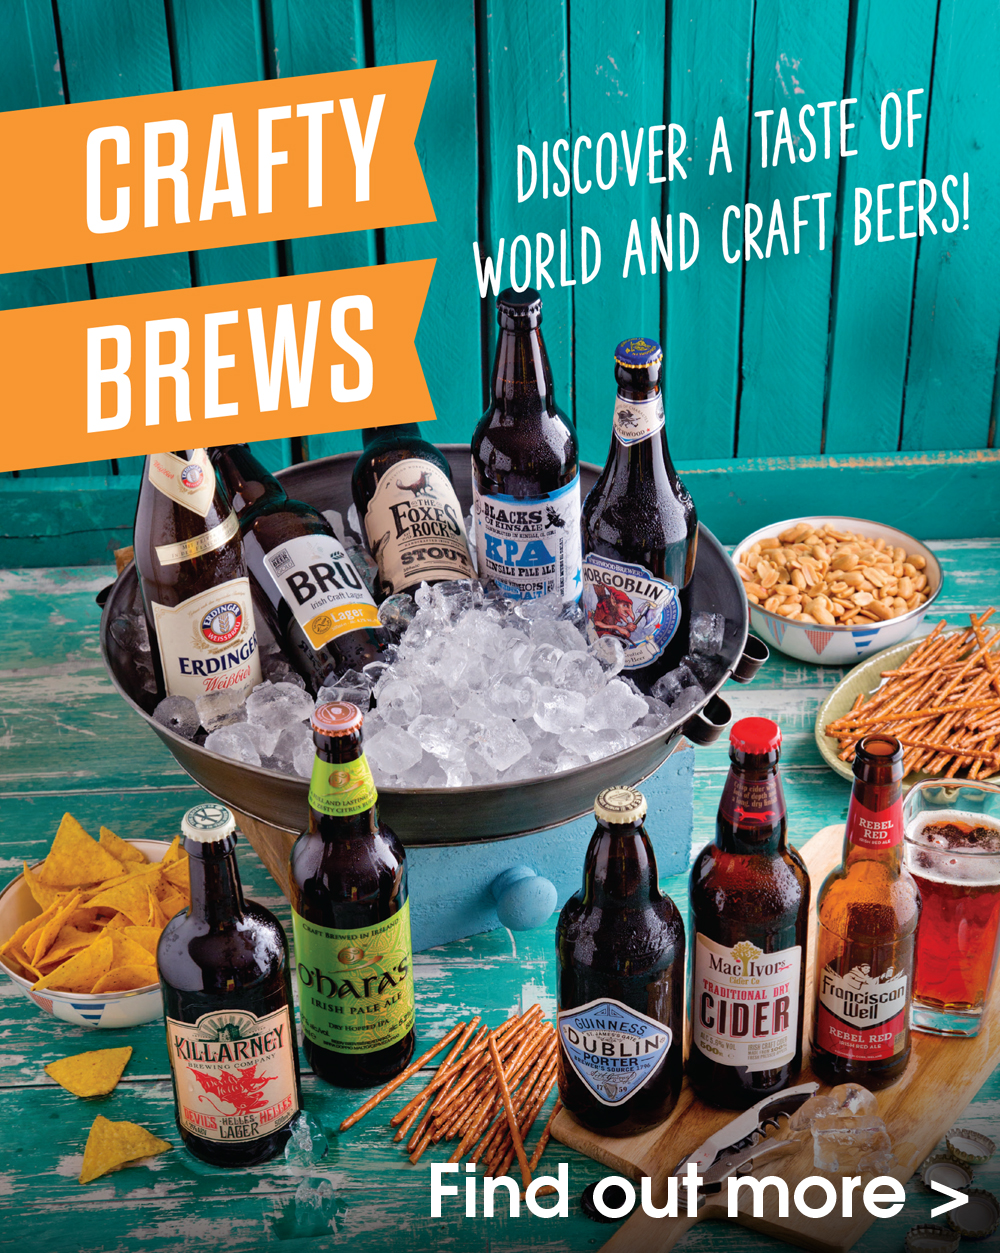 Crafty Brews - Discover a taste of World & Craft Beers